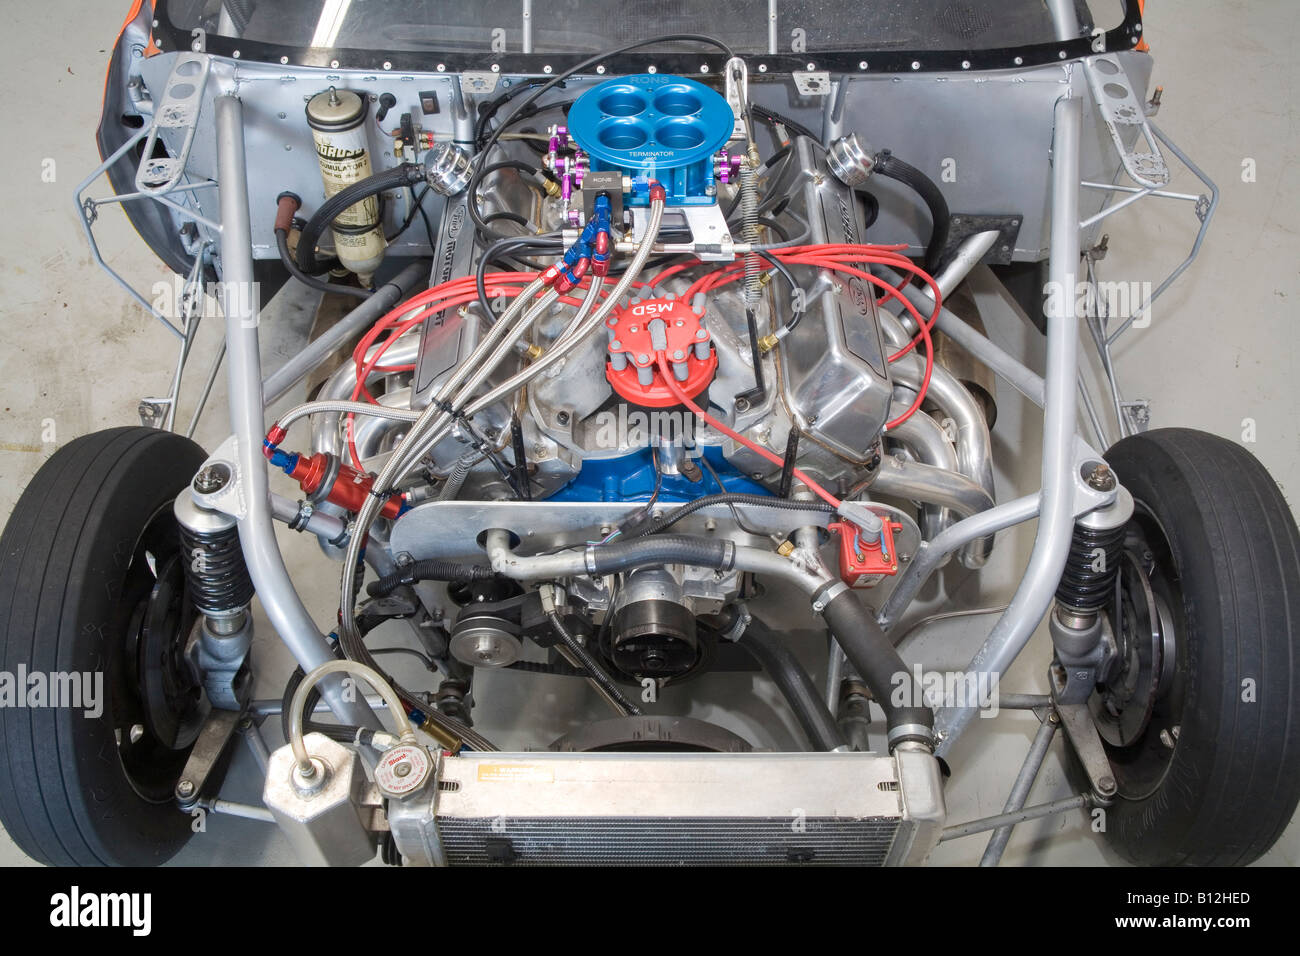 hight resolution of naturally aspirated and injected ford v8 racing engine as used in a drag car